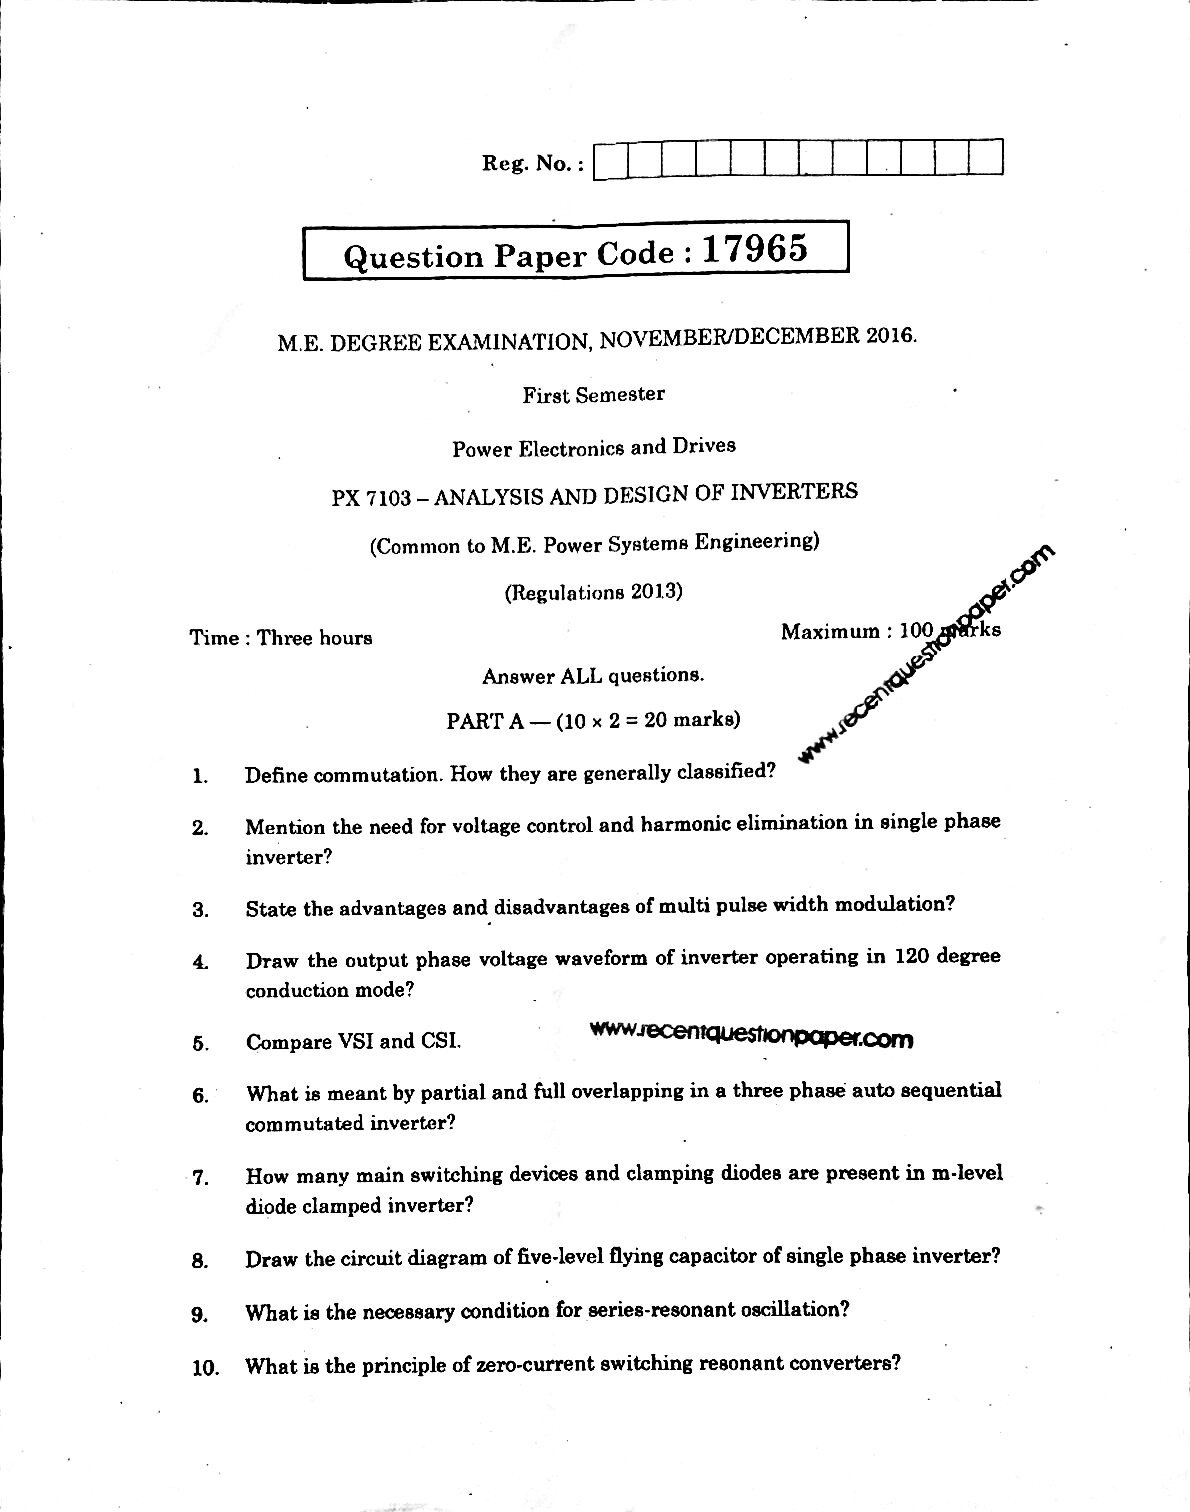 PX7103 Analysis And Design Of Inverters Anna University Question paper Nov/Dec 2016